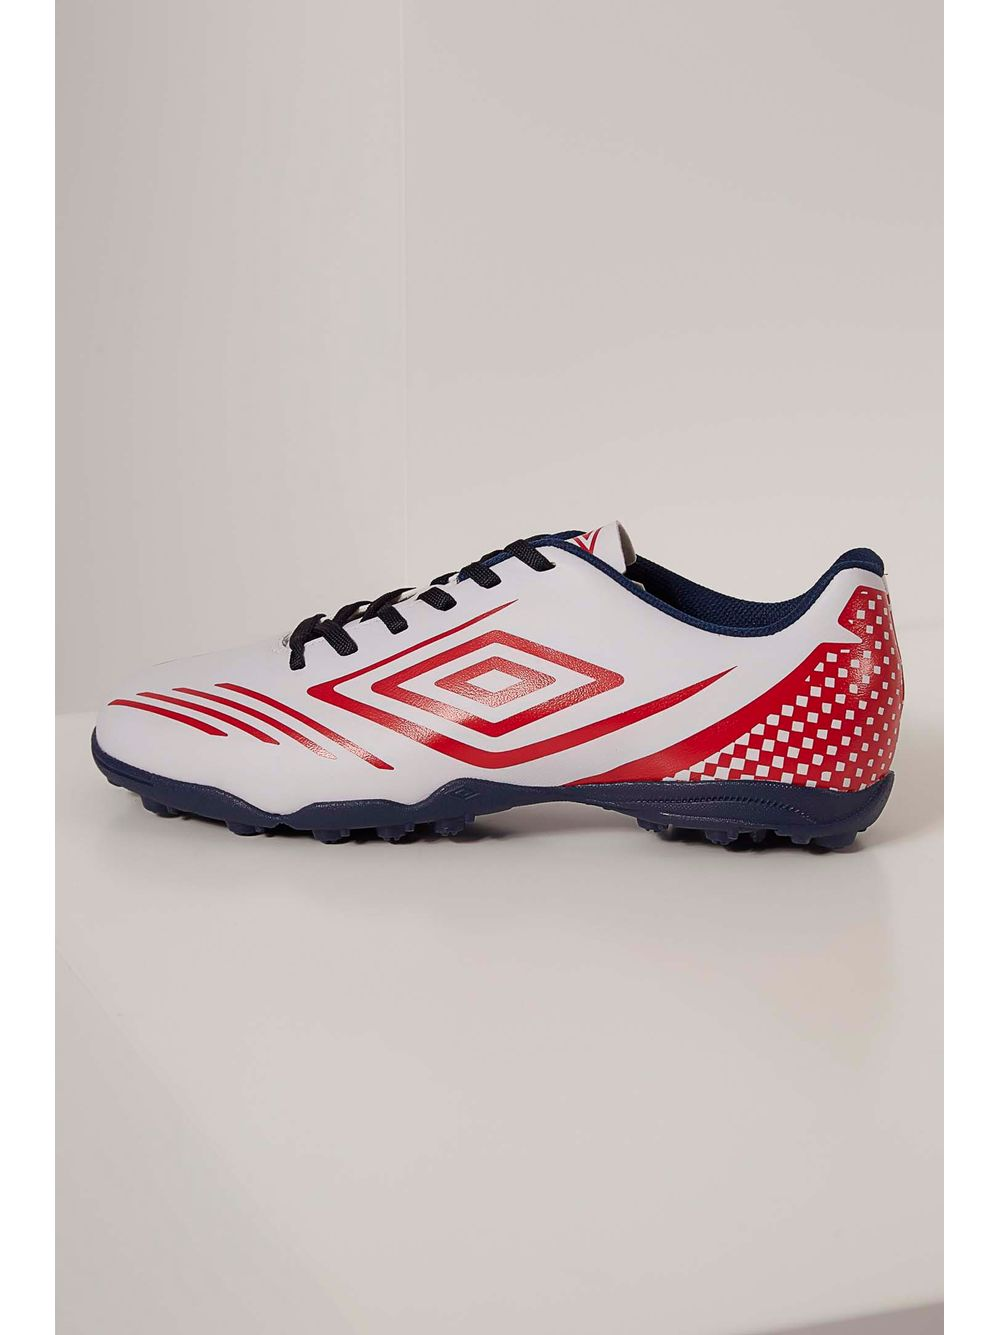 8c4de788cb Chuteira Society Soccer Shoes Umbro Guardian 0f71081 Branco - pittol